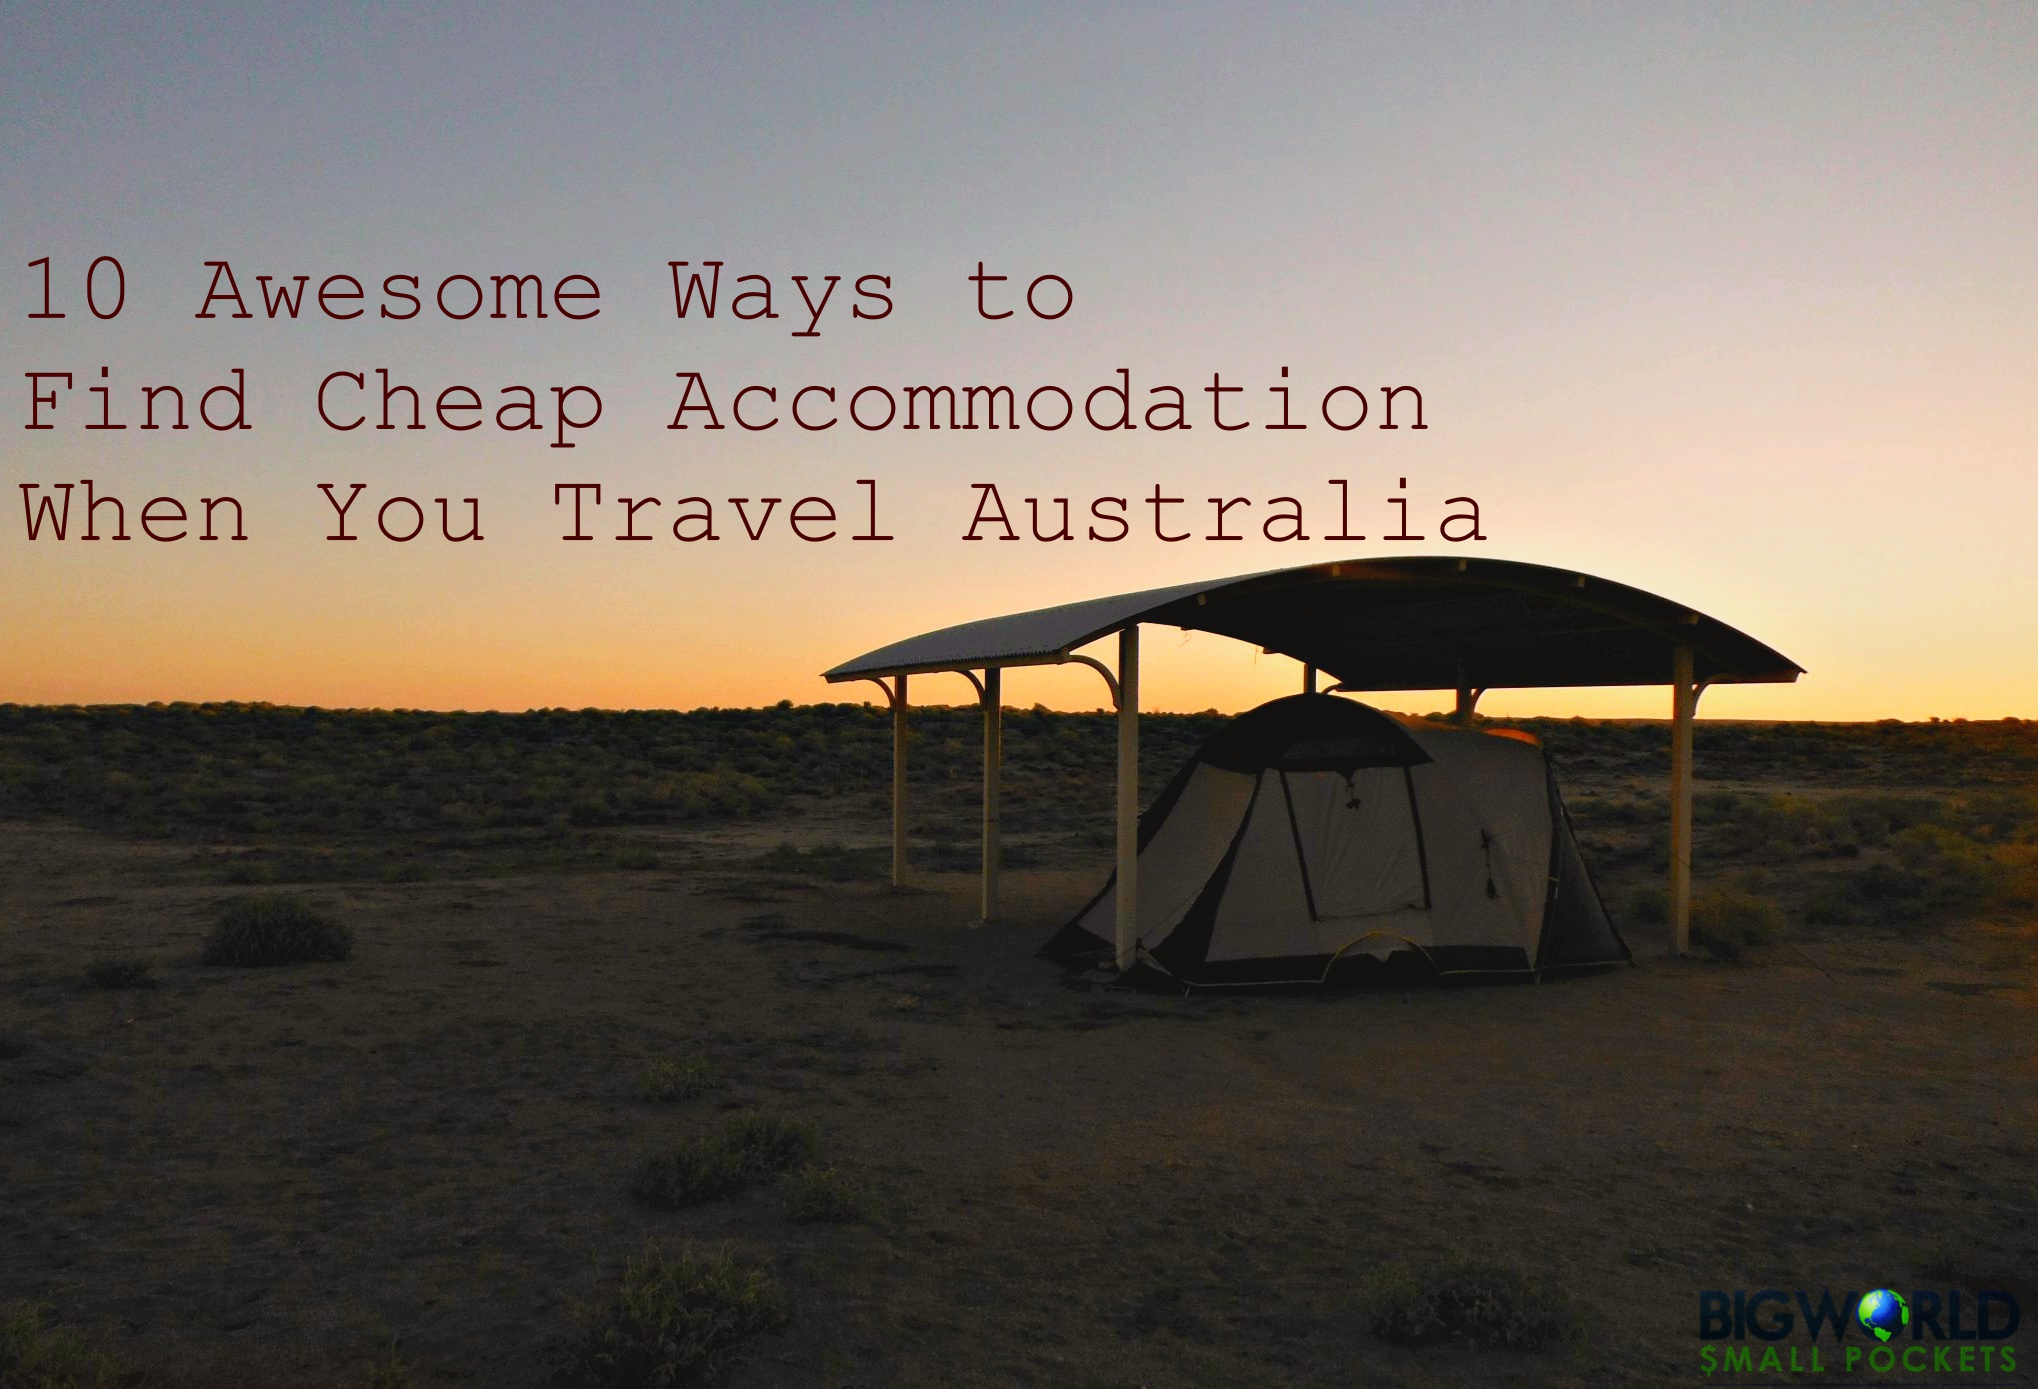 How to Find Cheap Accommodation in Australia